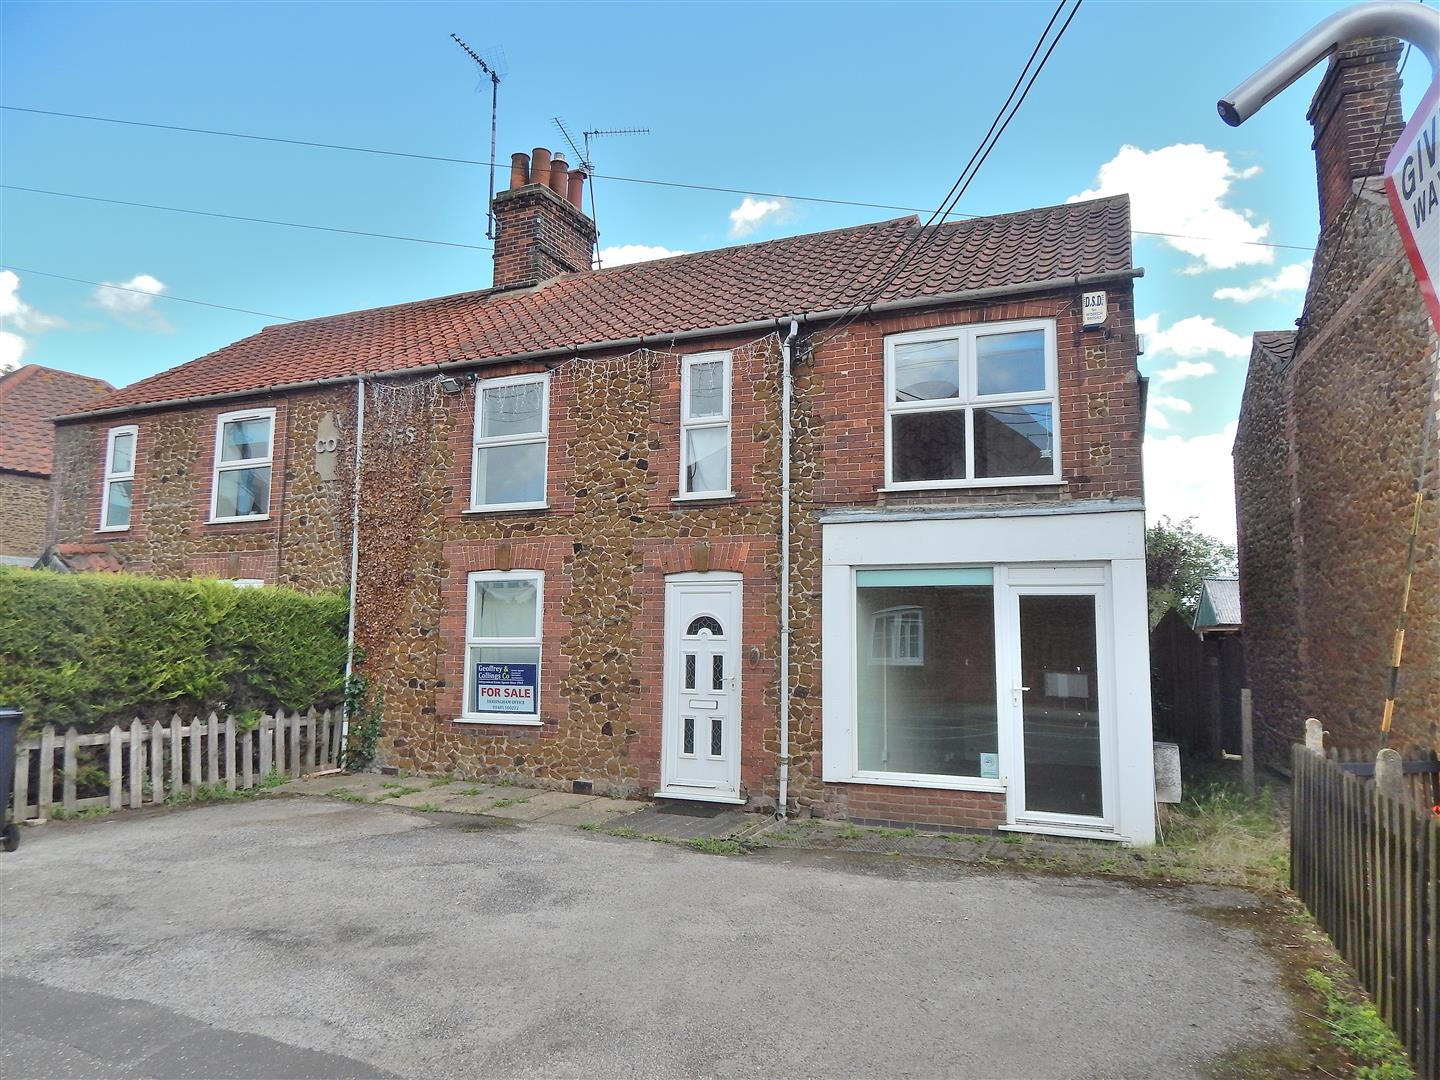 4 bed semi-detached house for sale in King's Lynn, PE31 6HP  - Property Image 1